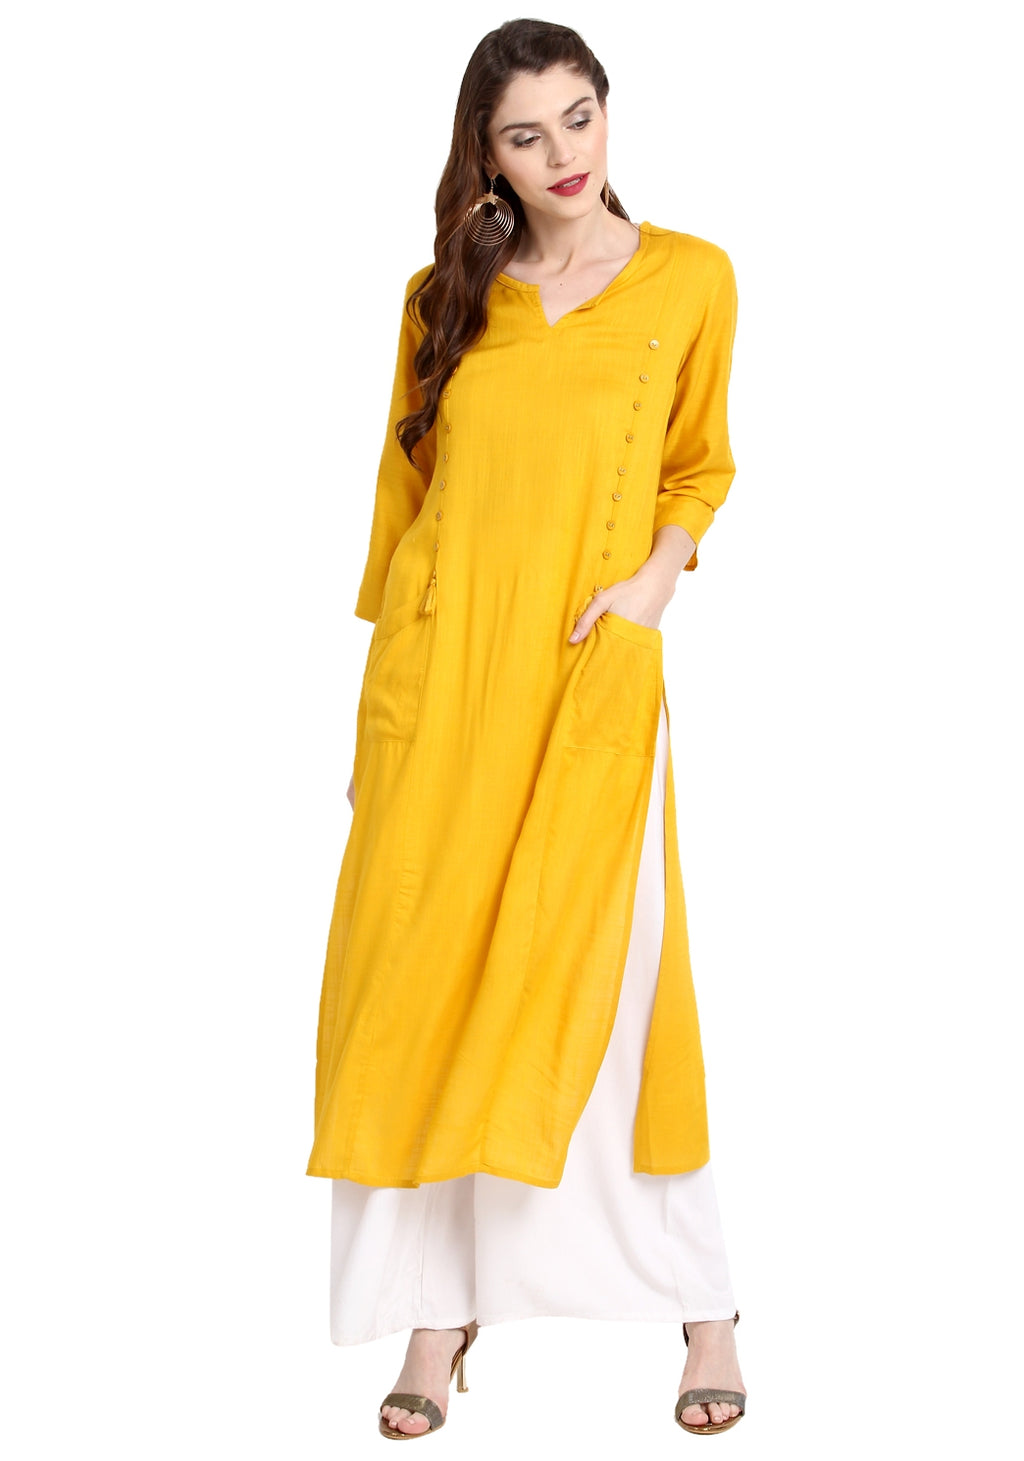 Yellow Color Rayon Readymade Party Wear Kurtis ( Sizes-36,38,40,42,44) Janasya Catlog SJ-10269